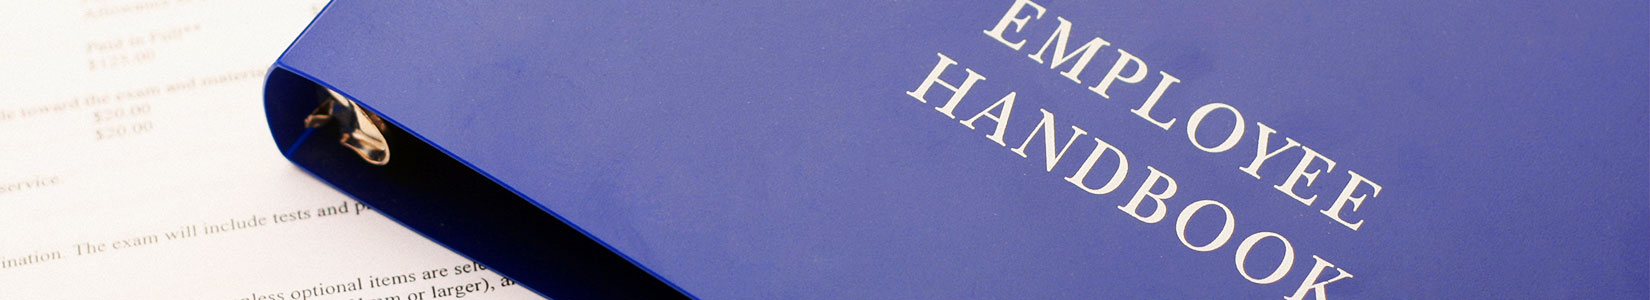 HR Employee Handbook and paperwork for the newly hired